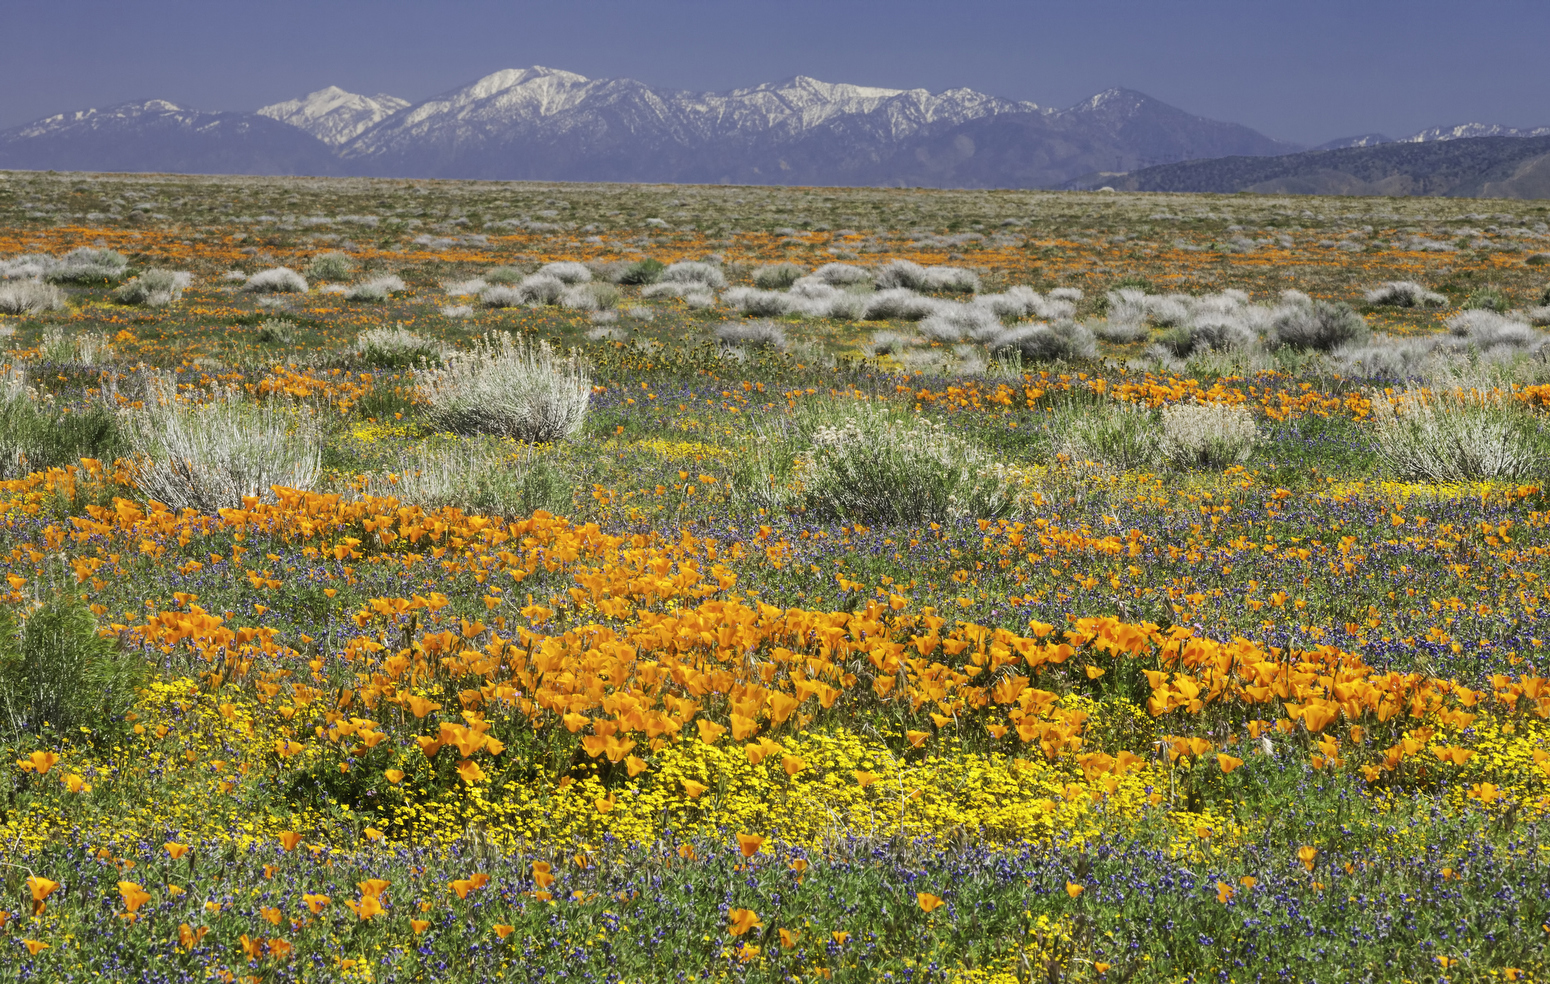 Field of wildflowers, California Poppy